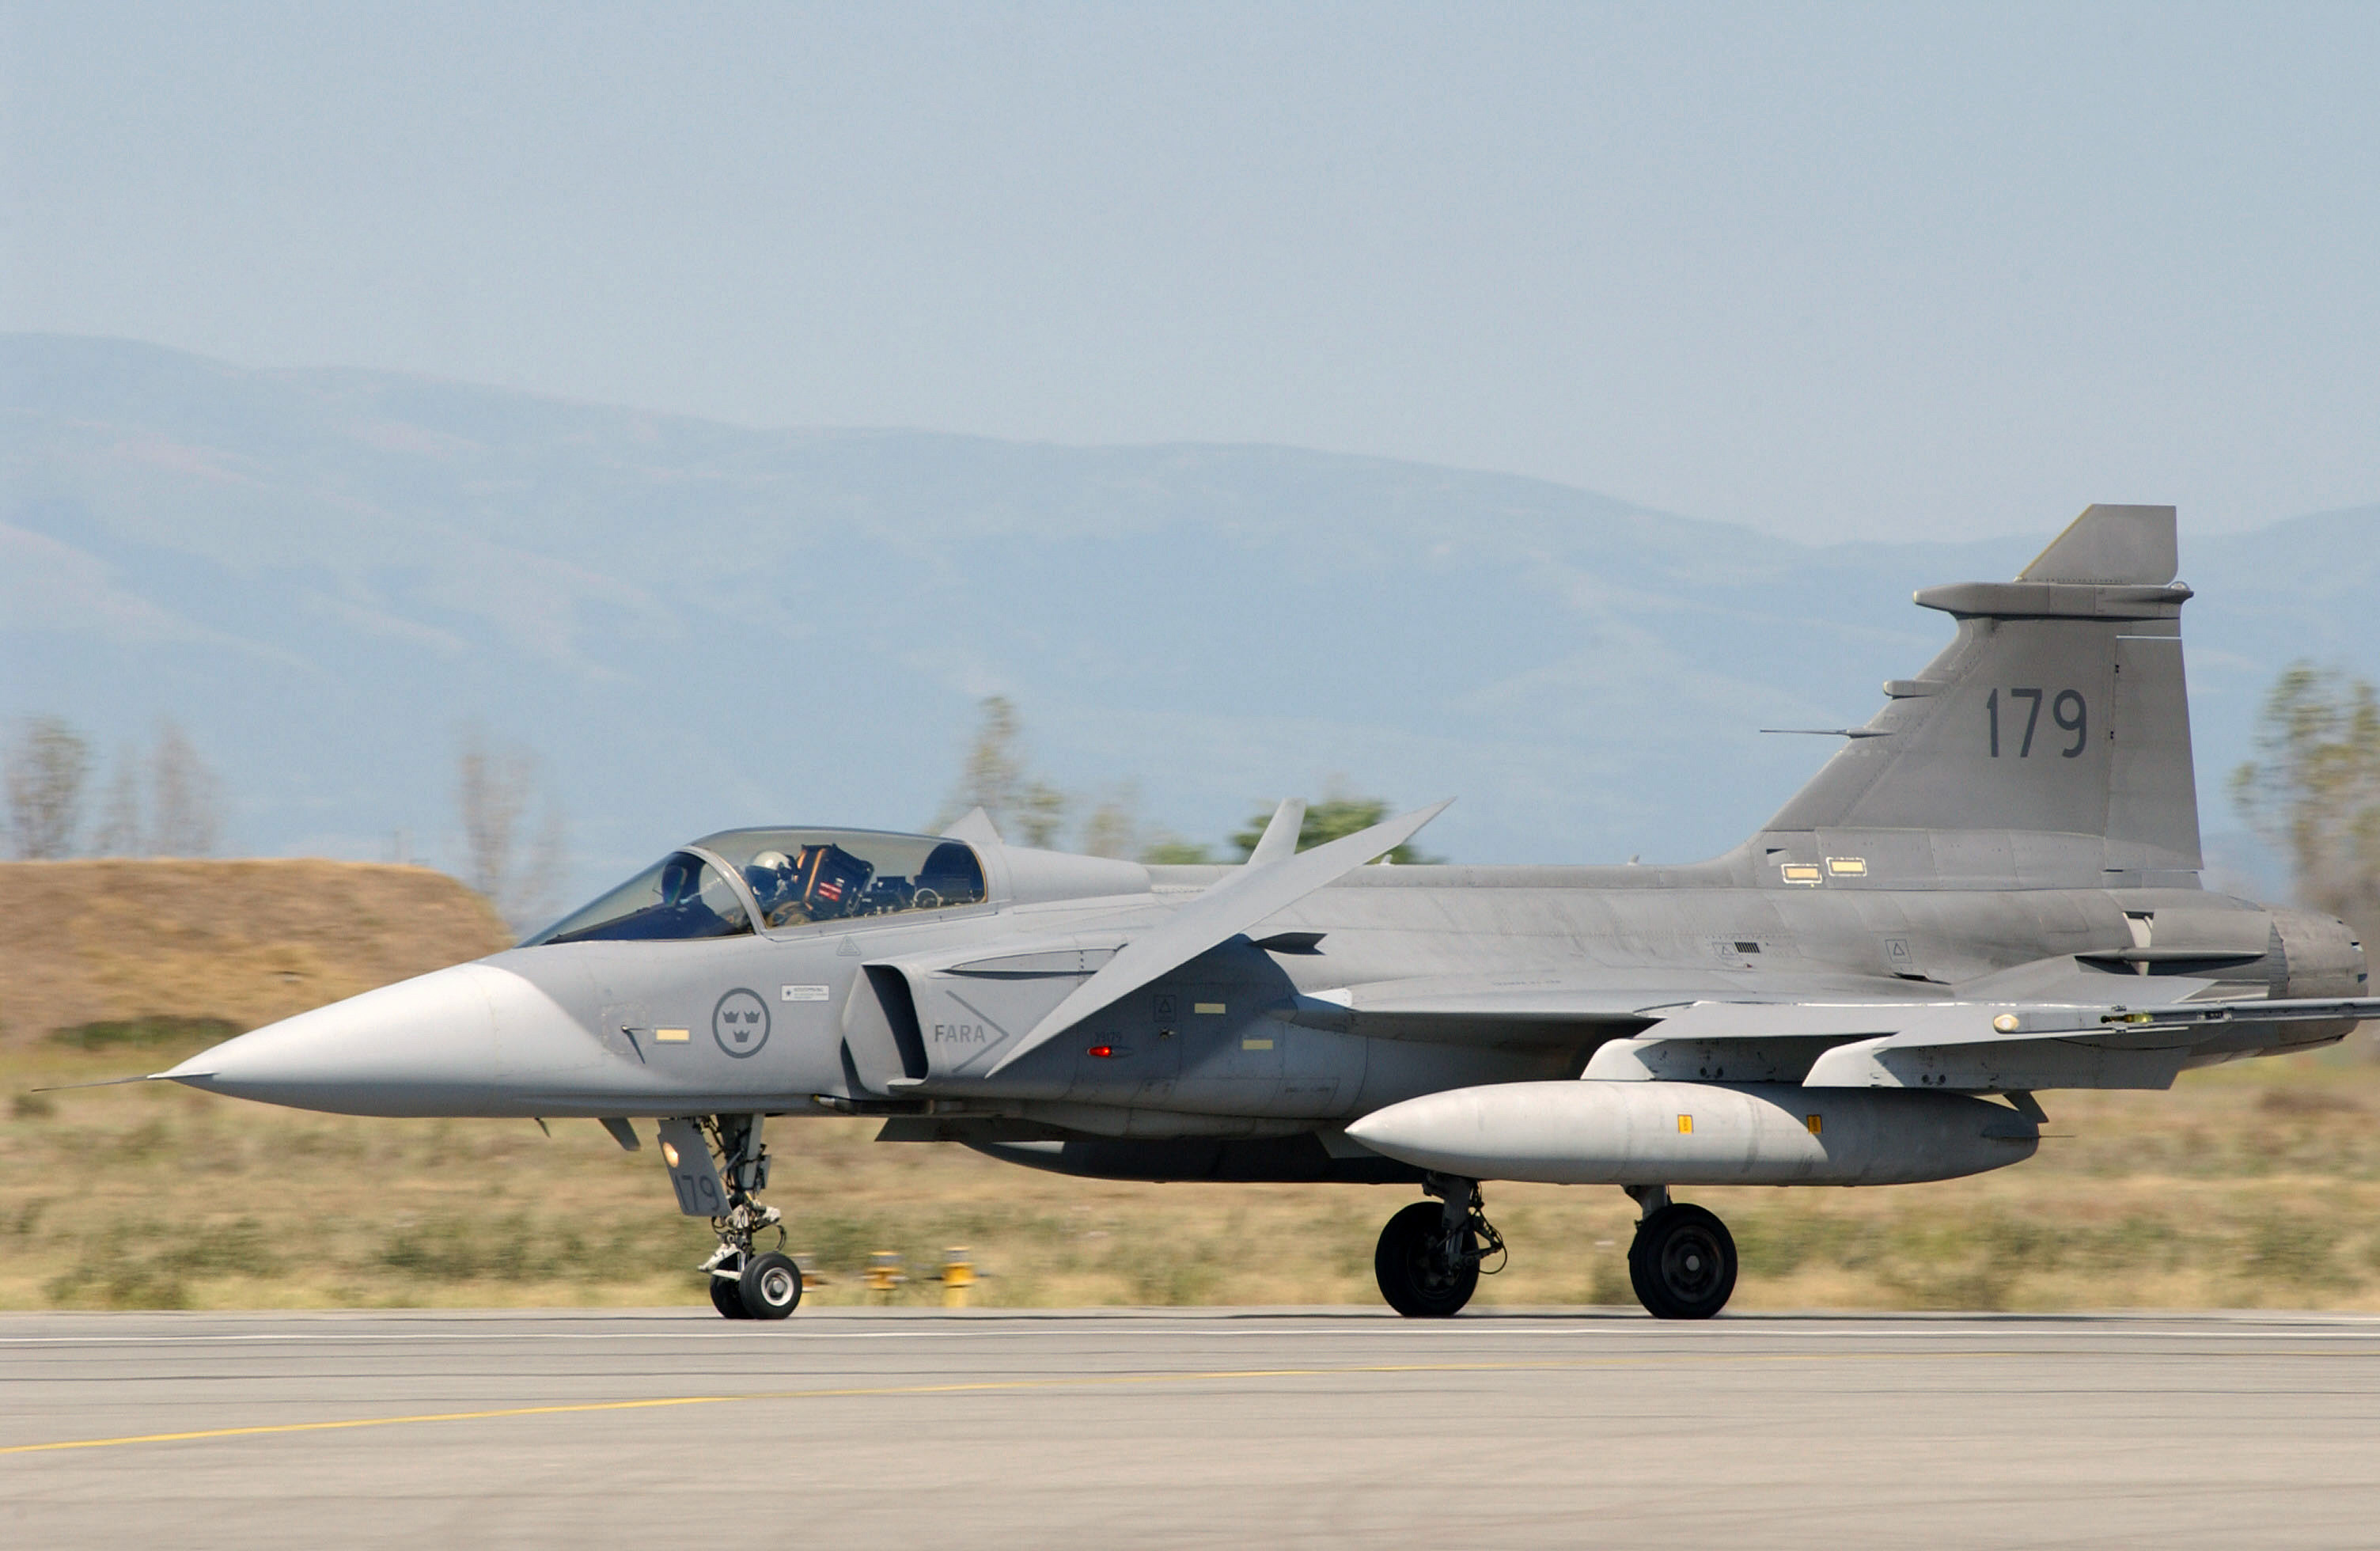 http://upload.wikimedia.org/wikipedia/commons/b/b0/Swedish_JAS-39_Gripen_landing.jpg